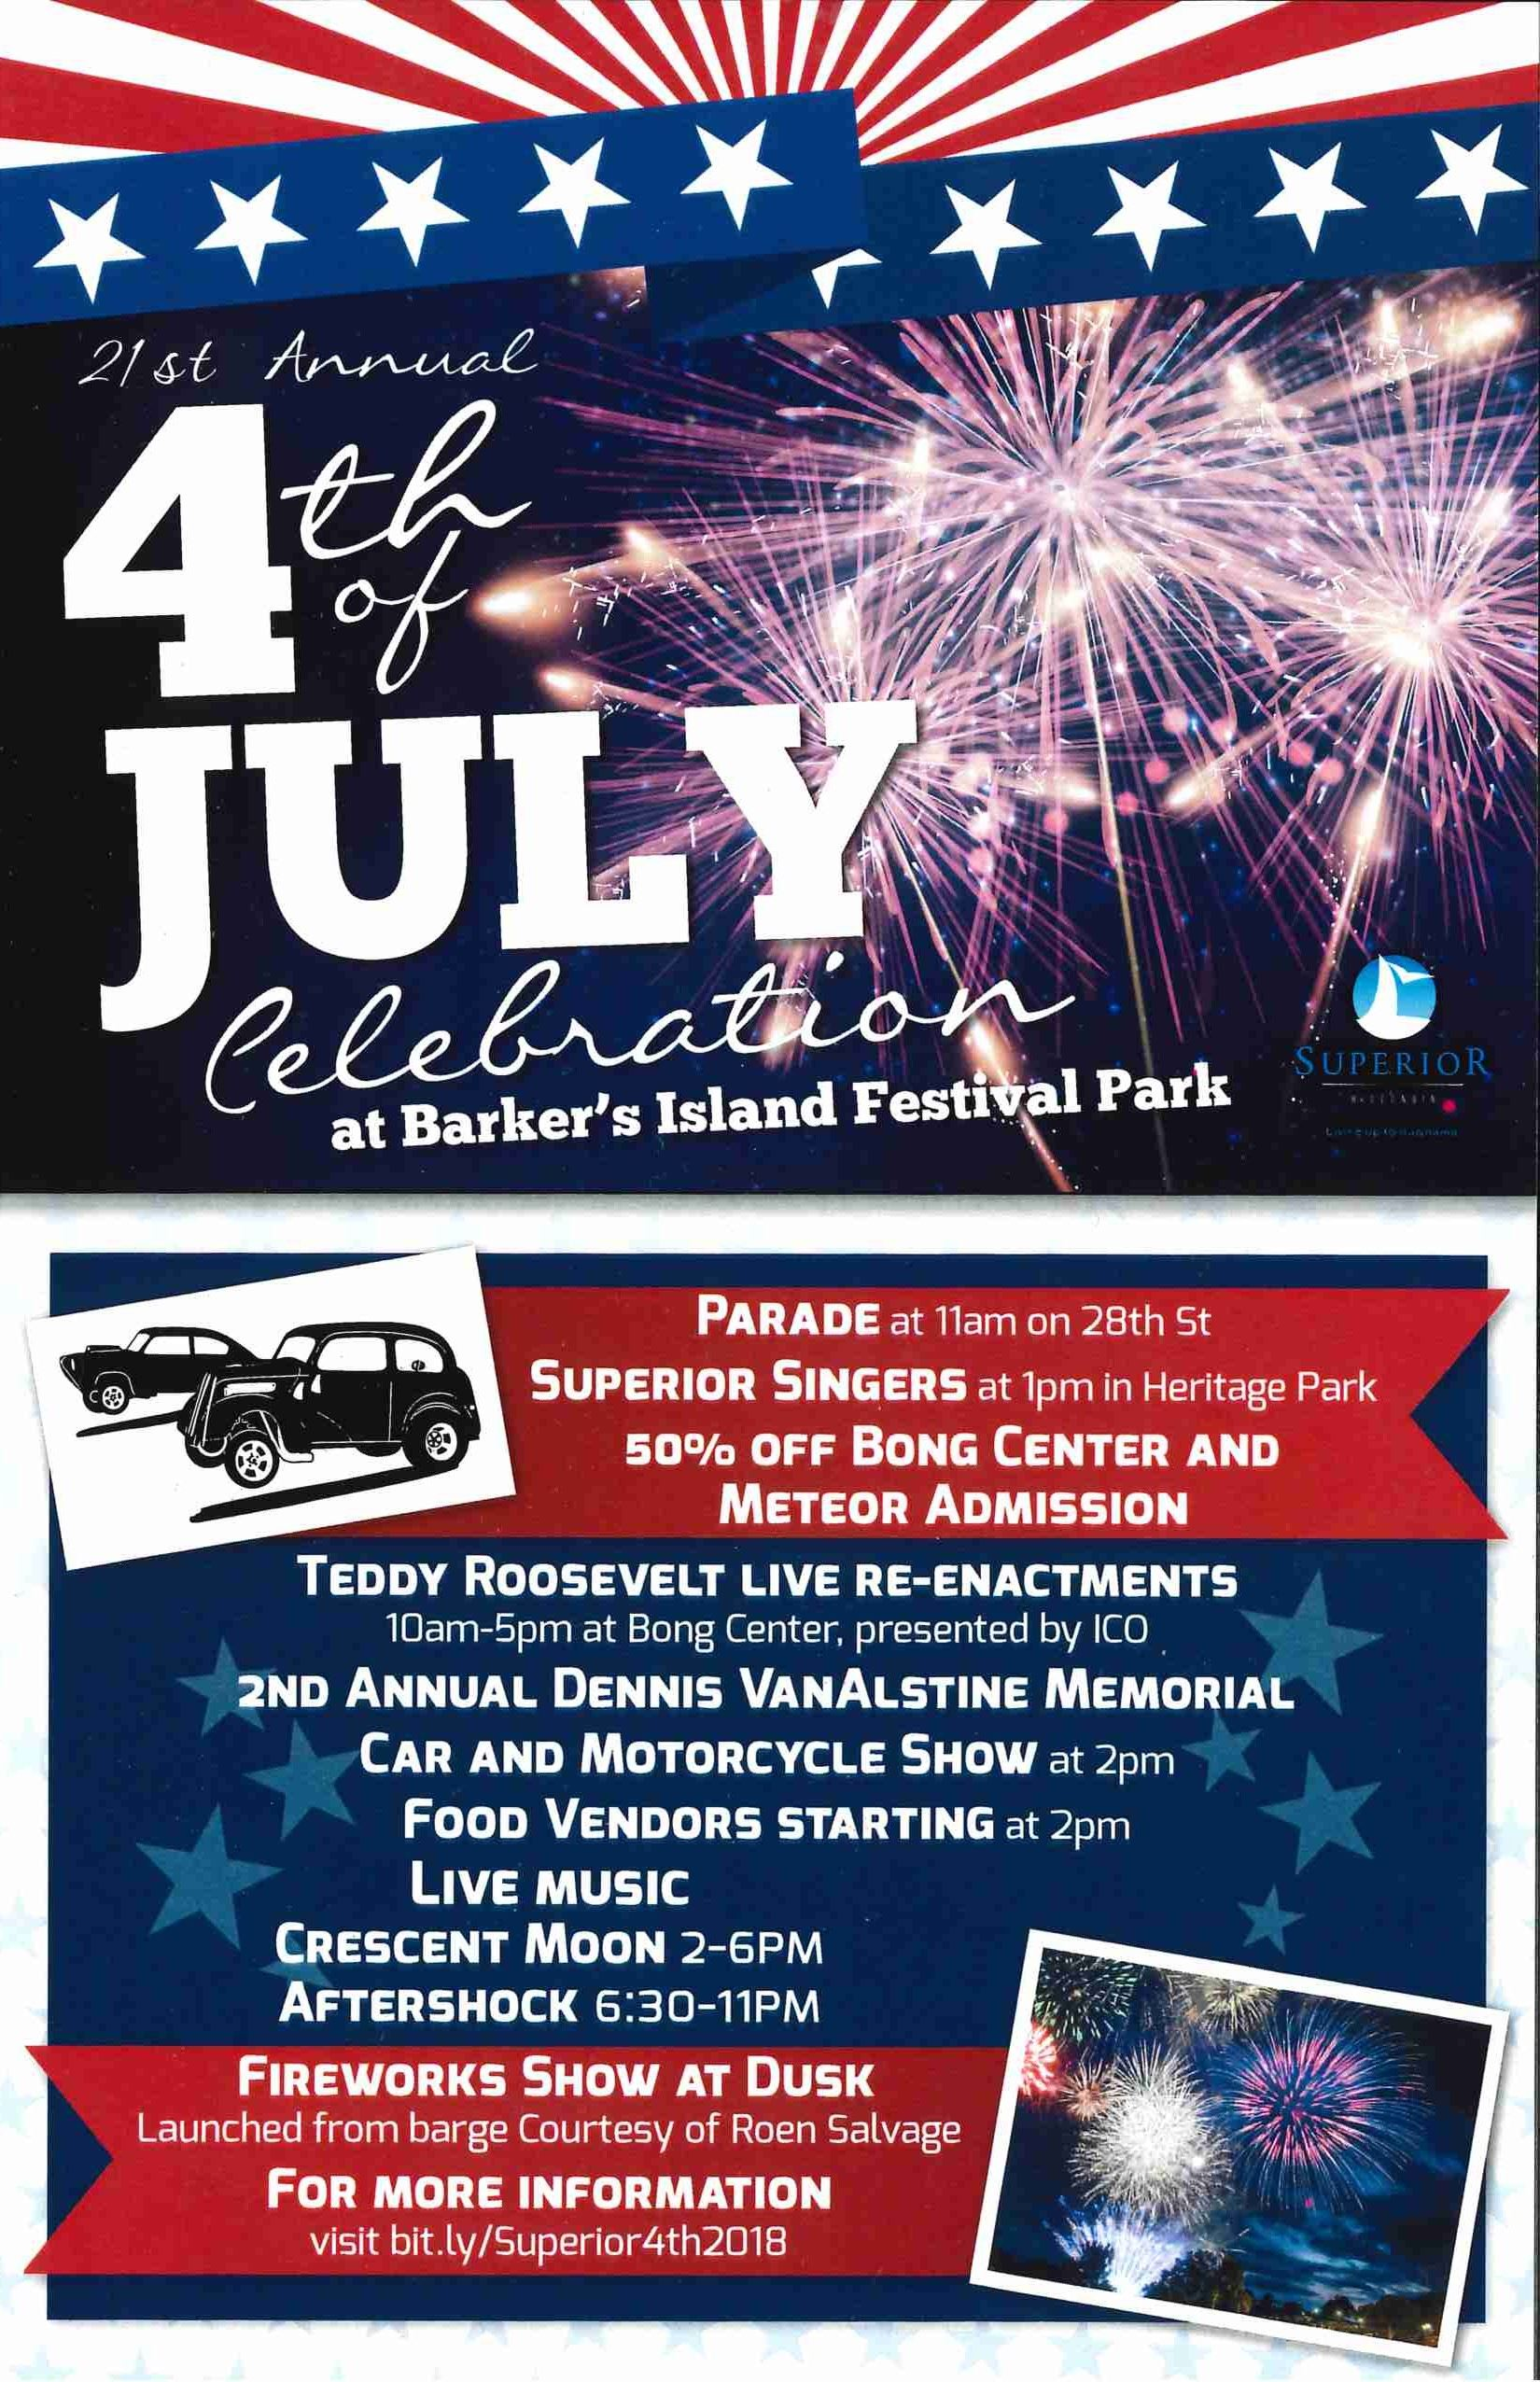 4th of July poster with schedule of events